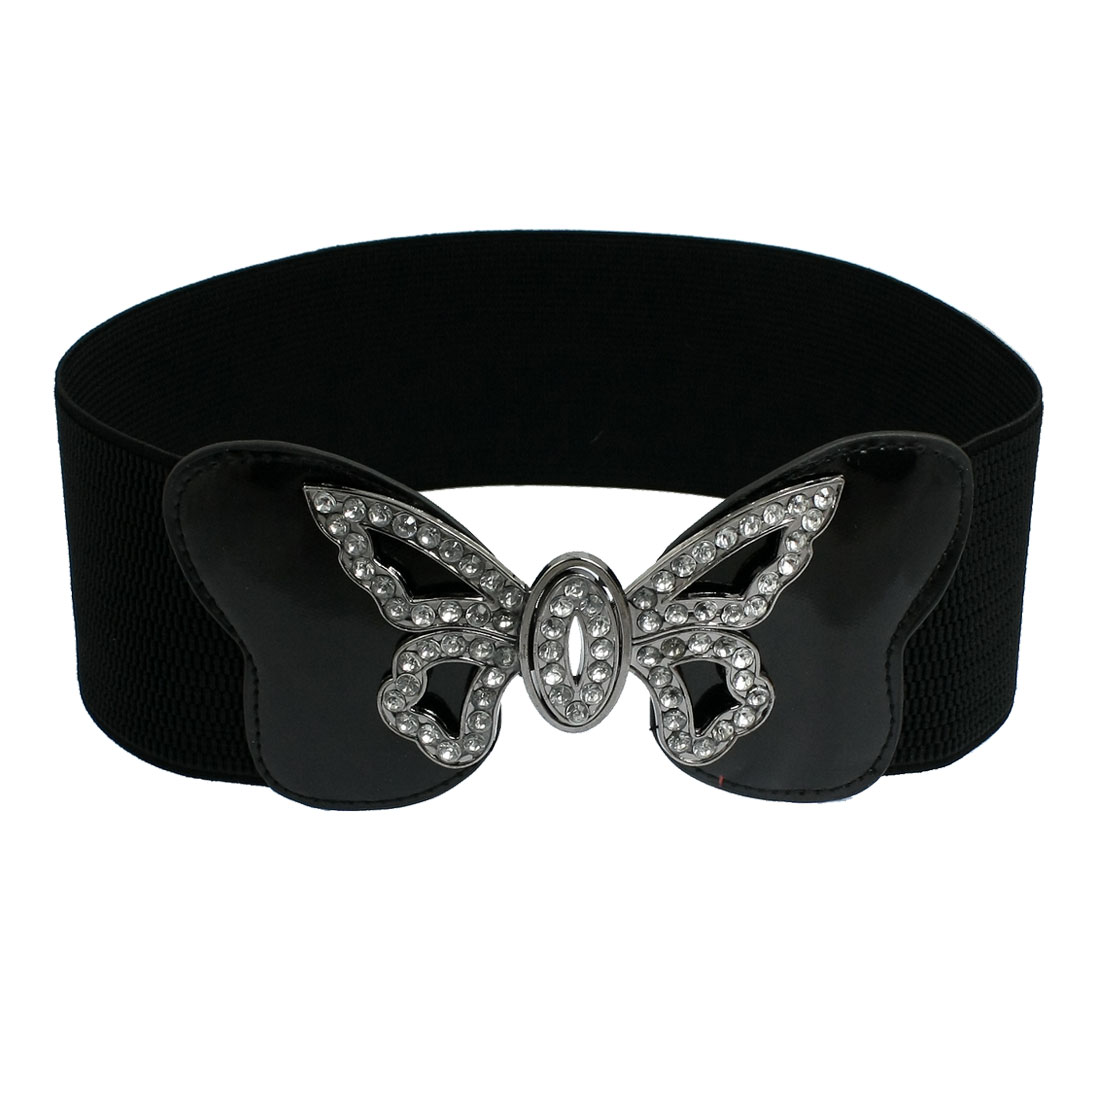 Women Butterfly Design Interlock Buckle Wide Elastic Belt Waisband Black